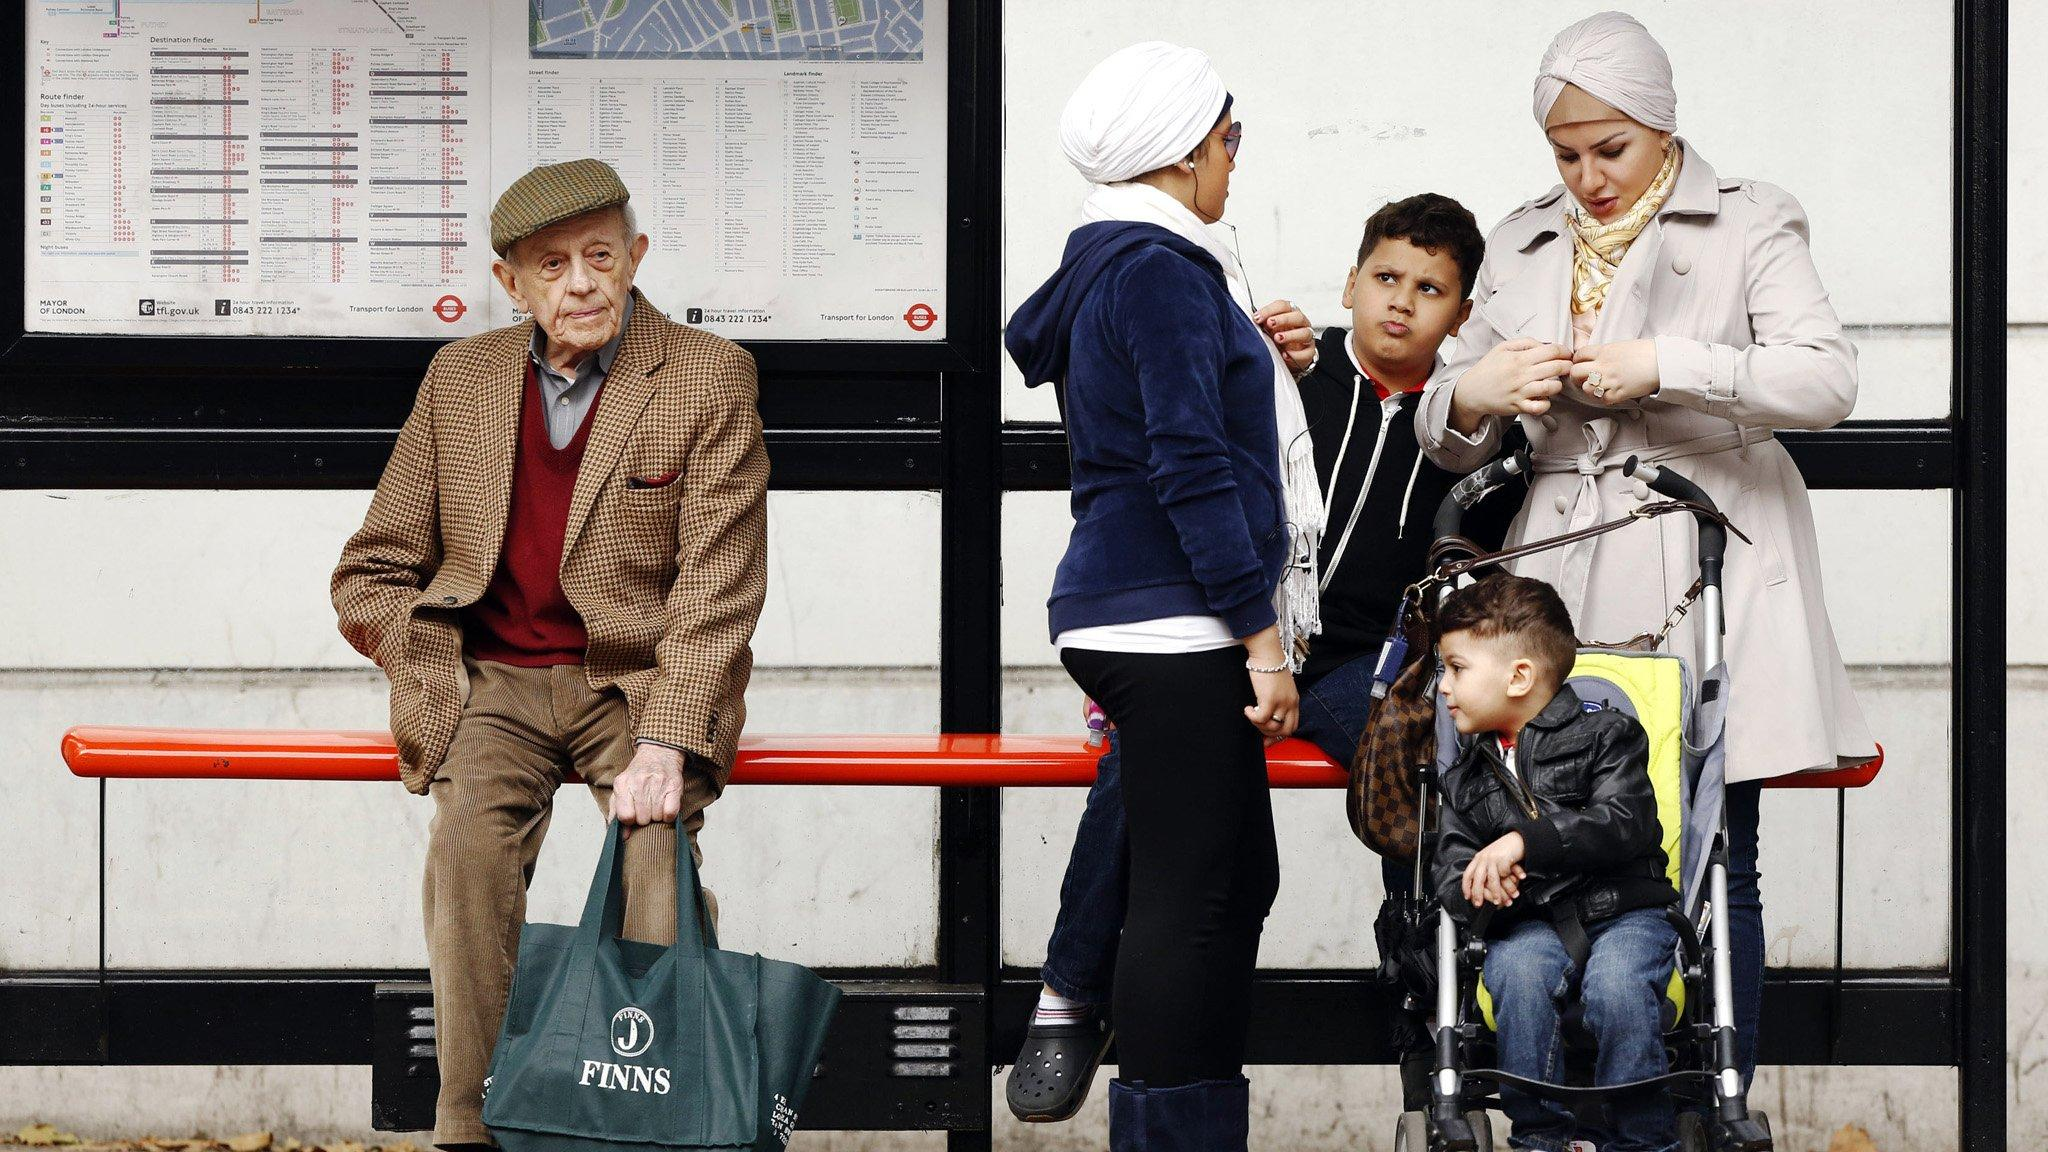 The Silver Economy: Technology used to help older people navigate